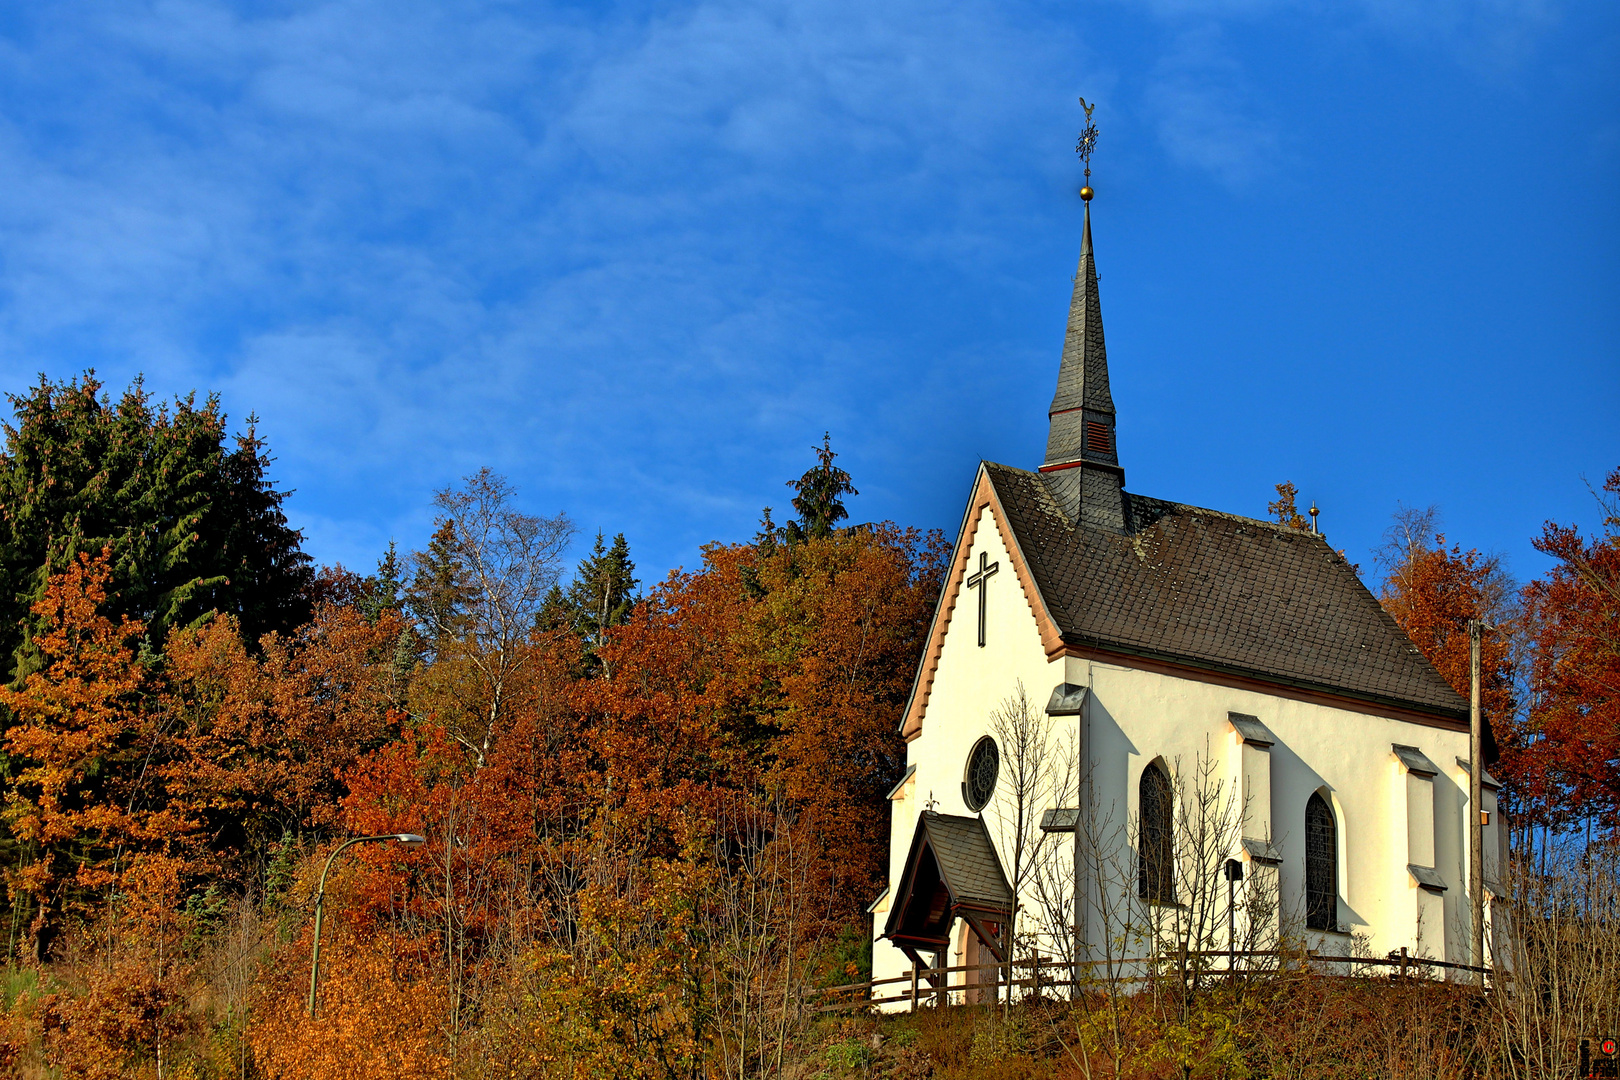 Kapelle in Herbststimmung